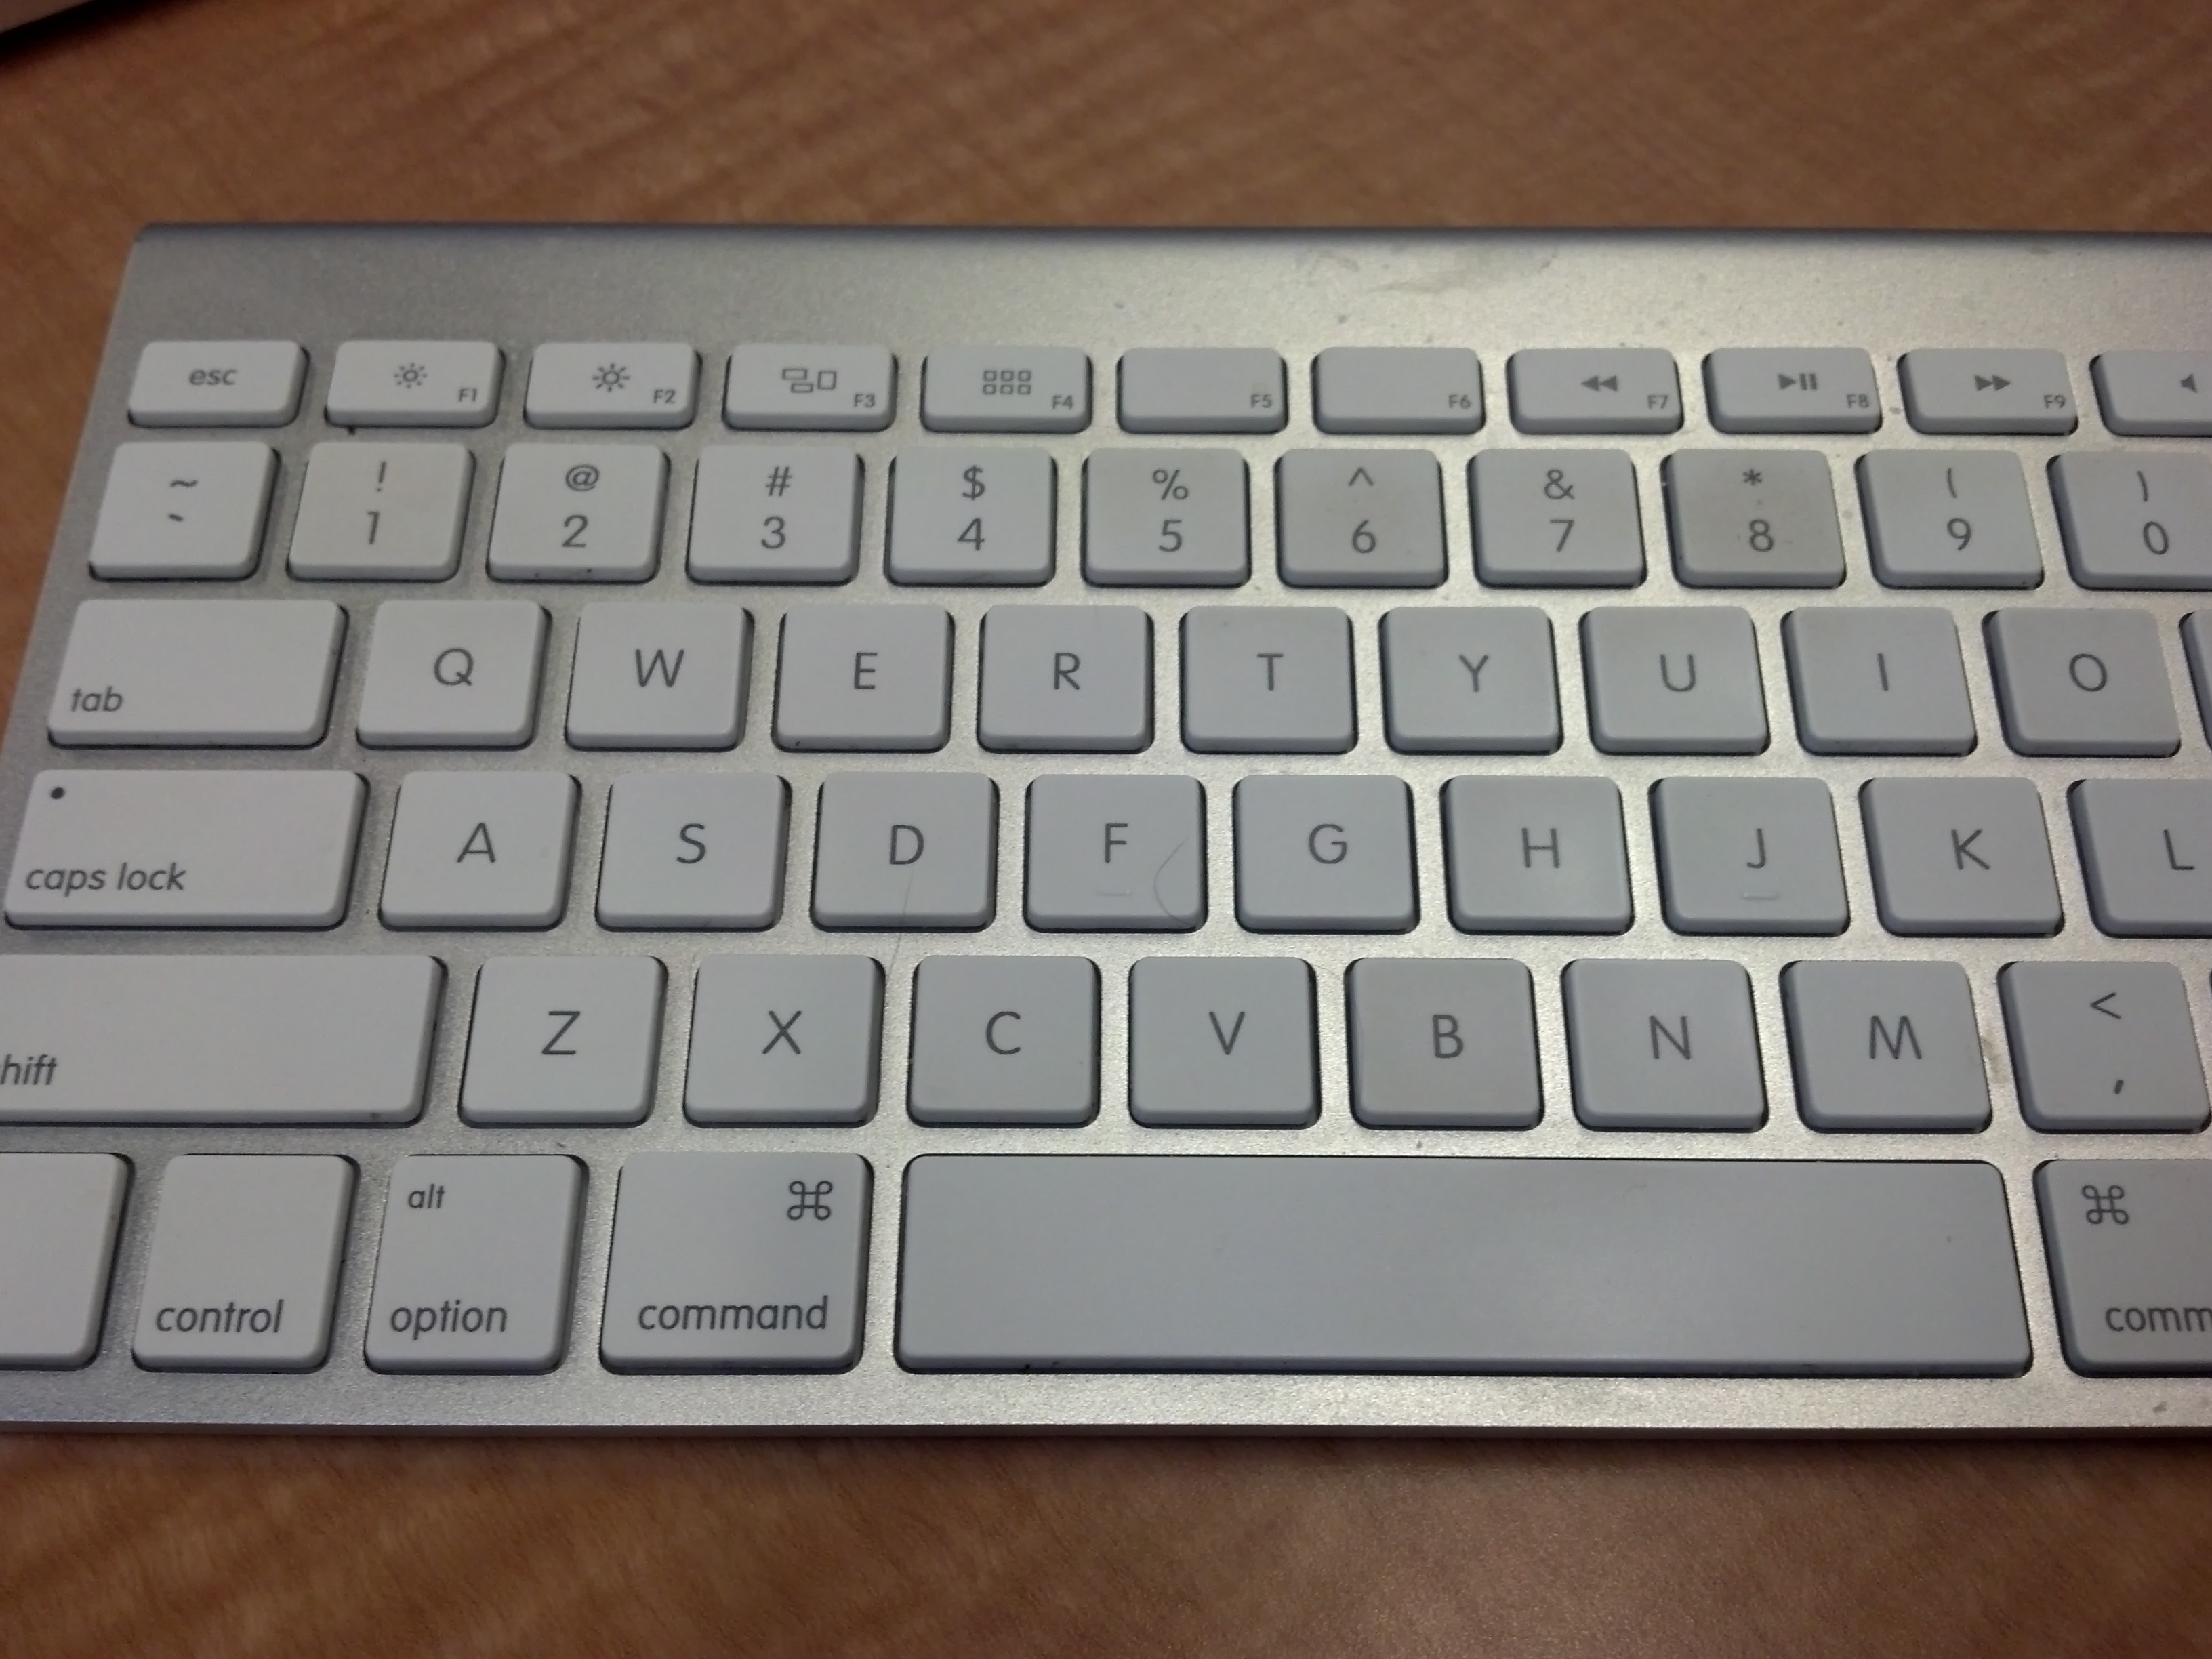 How do I open the keyboard